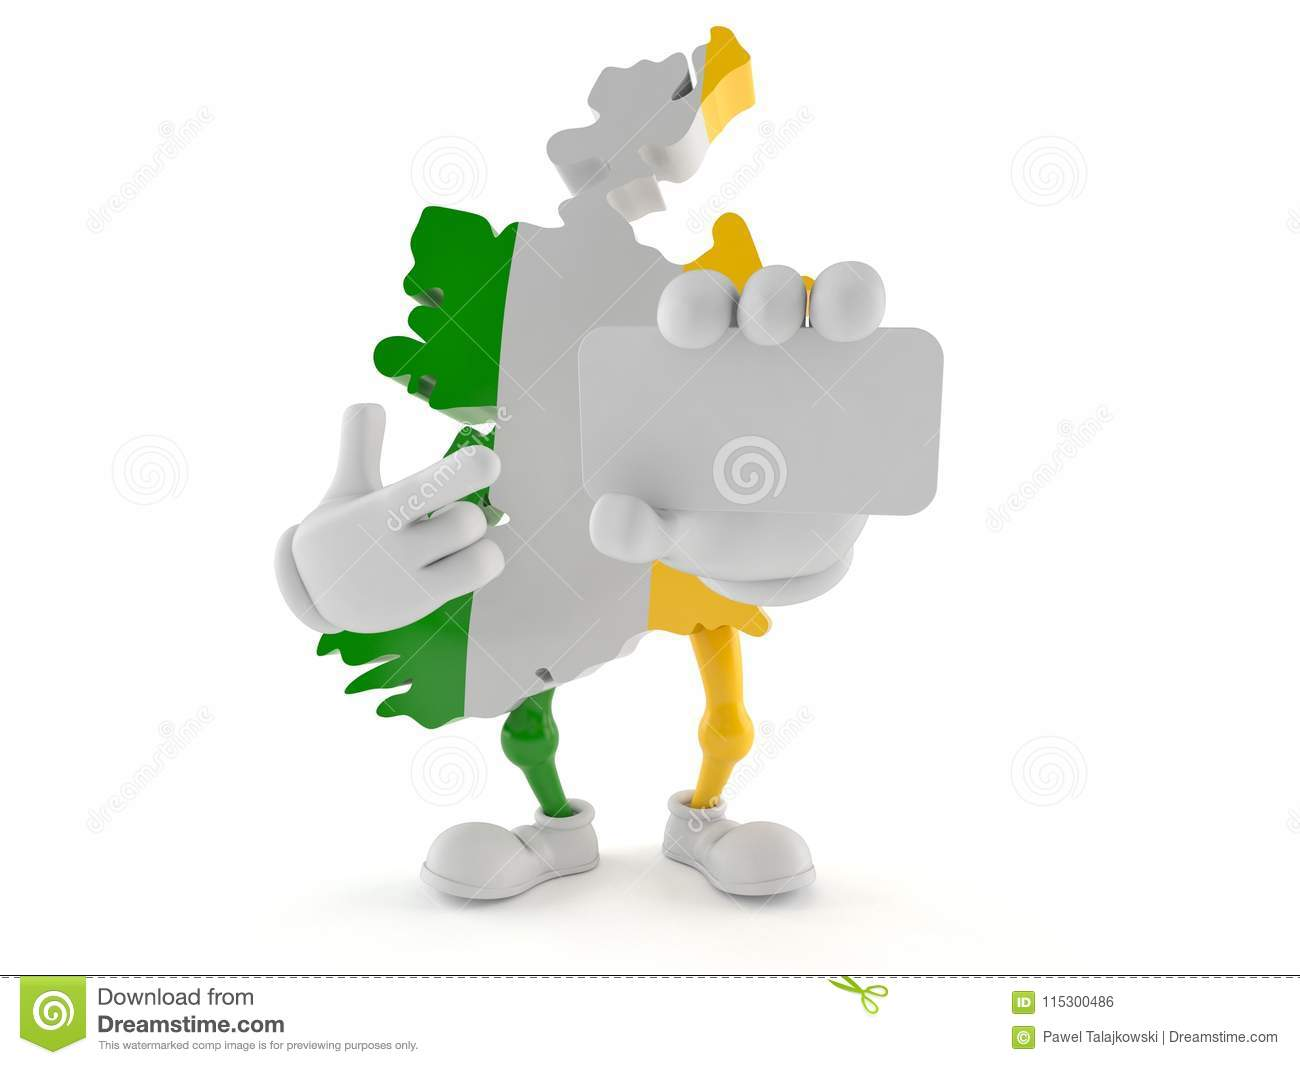 Ireland character holding blank business card stock illustration ireland character holding blank business card royalty free illustration reheart Gallery